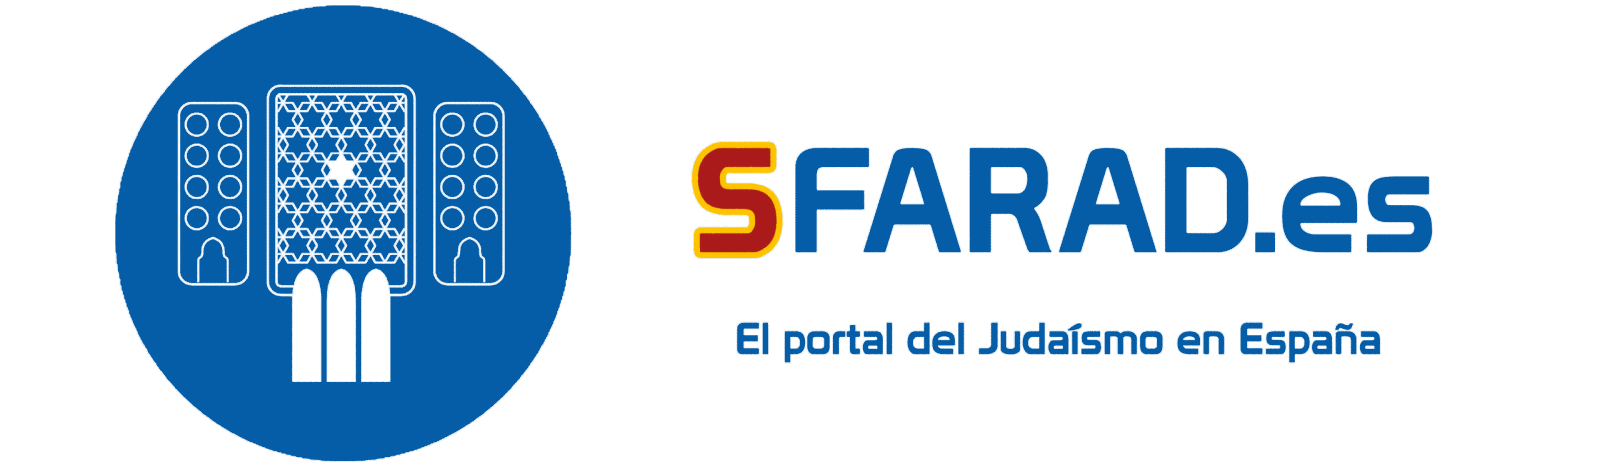 Sfarad.es